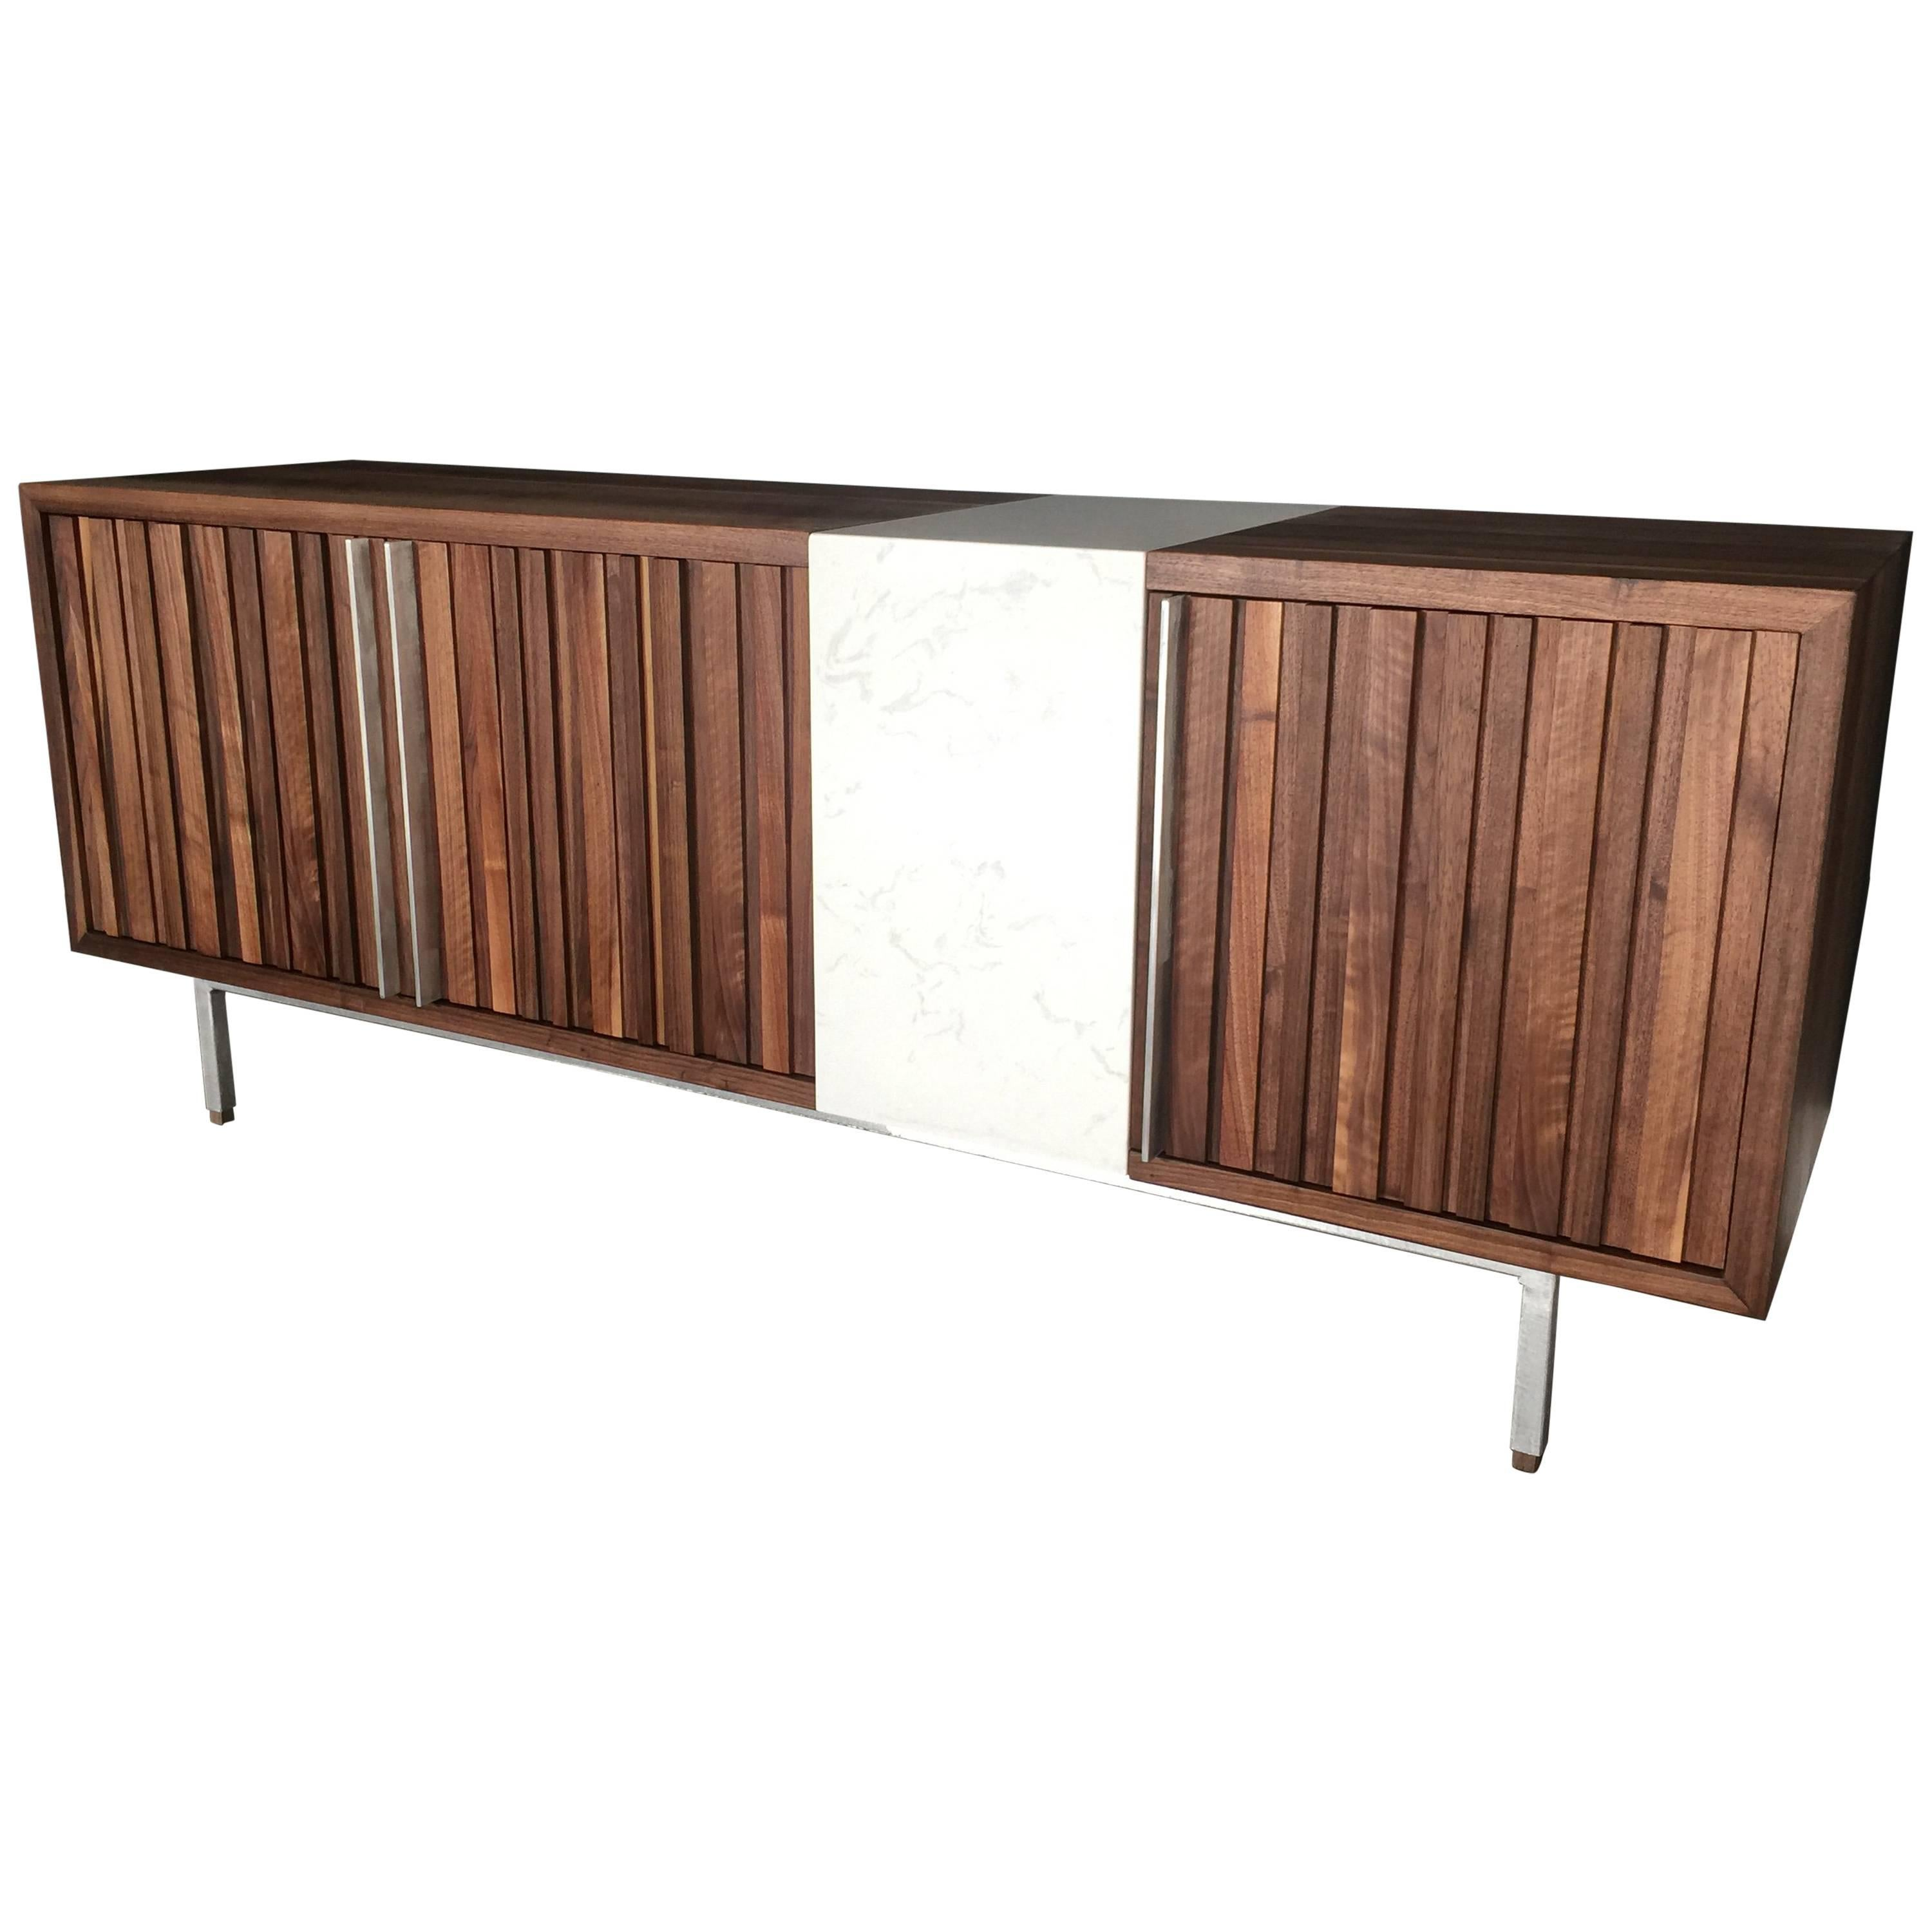 Black Walnut Credenzas on Aluminum with quartz